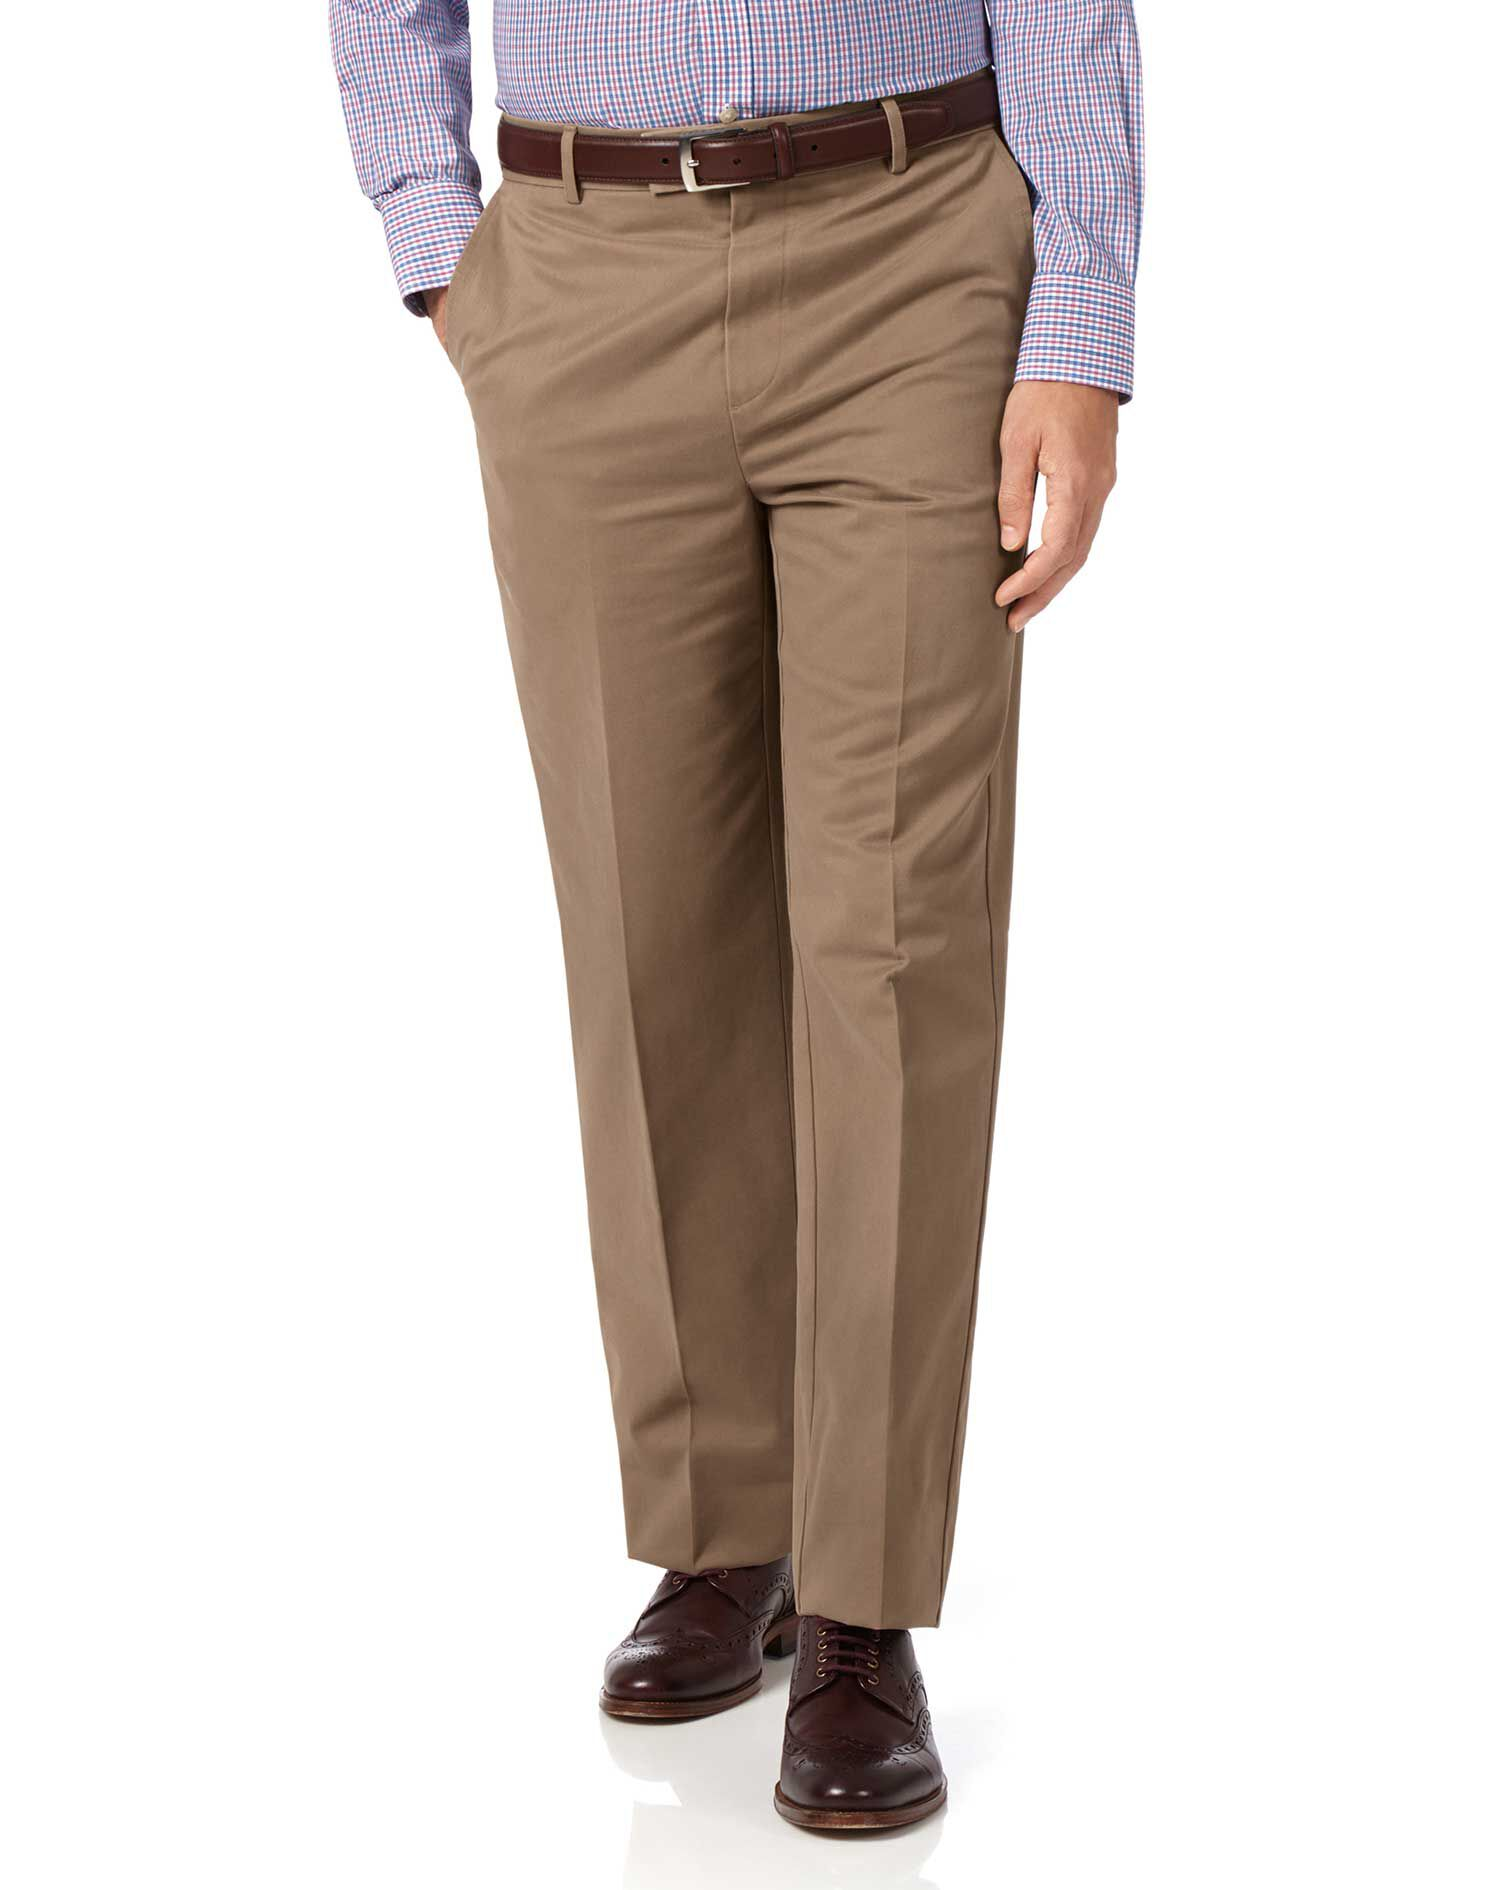 Tan Classic Fit Flat Front Non-Iron Cotton Chino Trousers Size W40 L32 by Charles Tyrwhitt